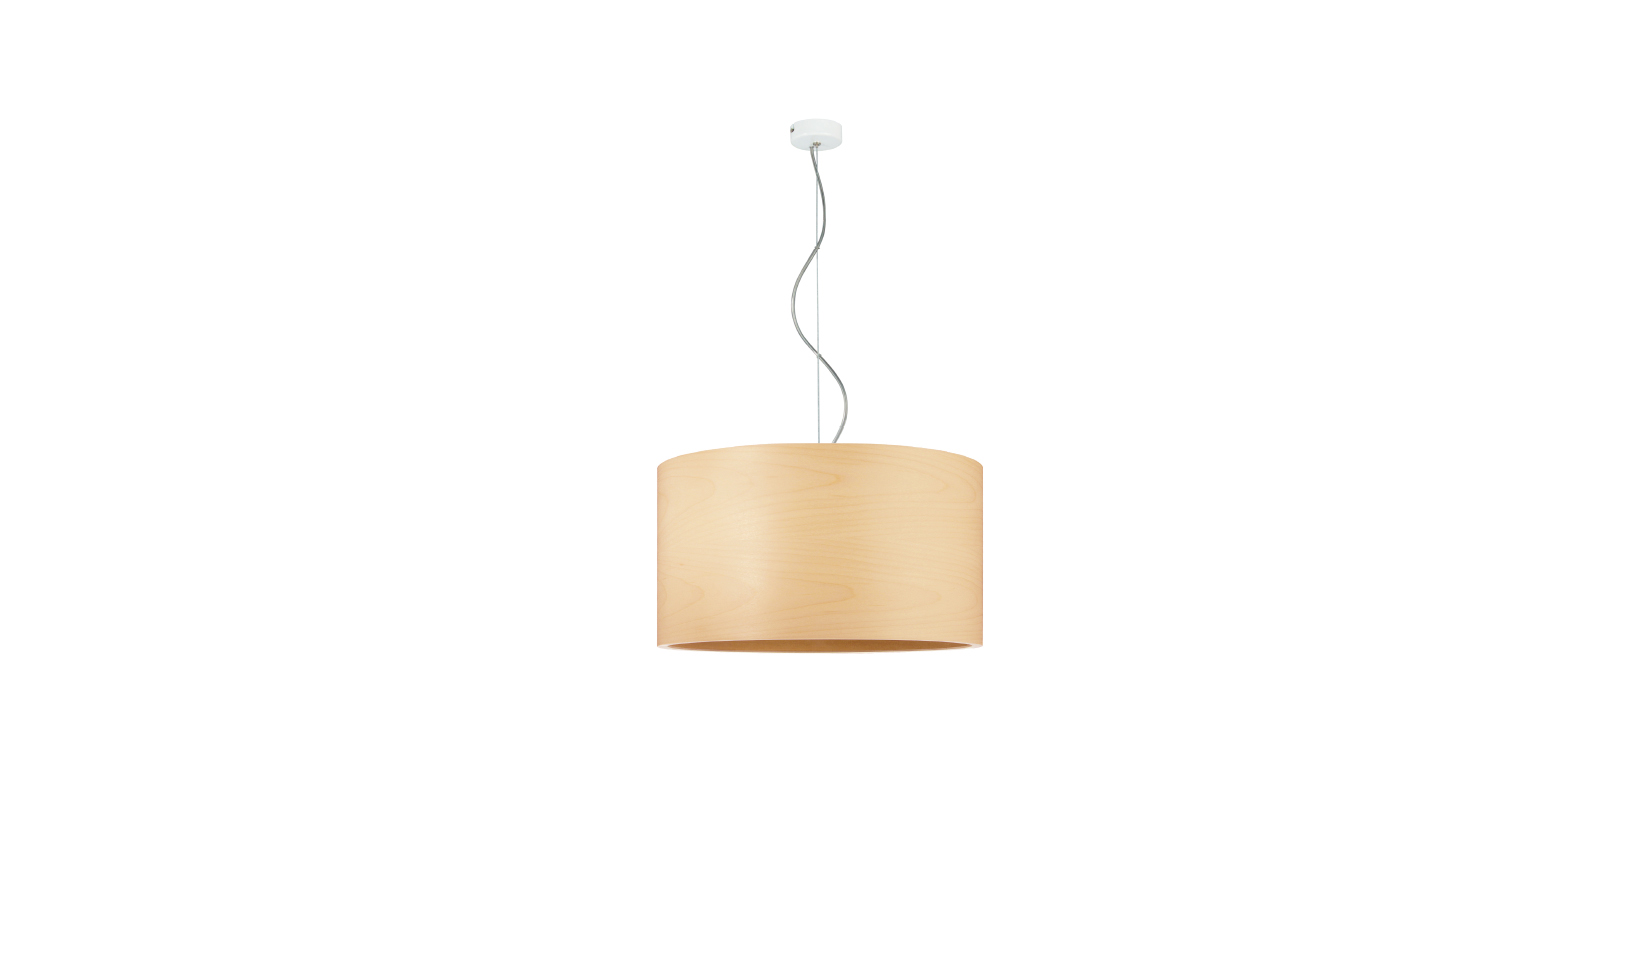 dreizehngrad pendant lamp model Funk 40/22P maple veneer lamp design lamp